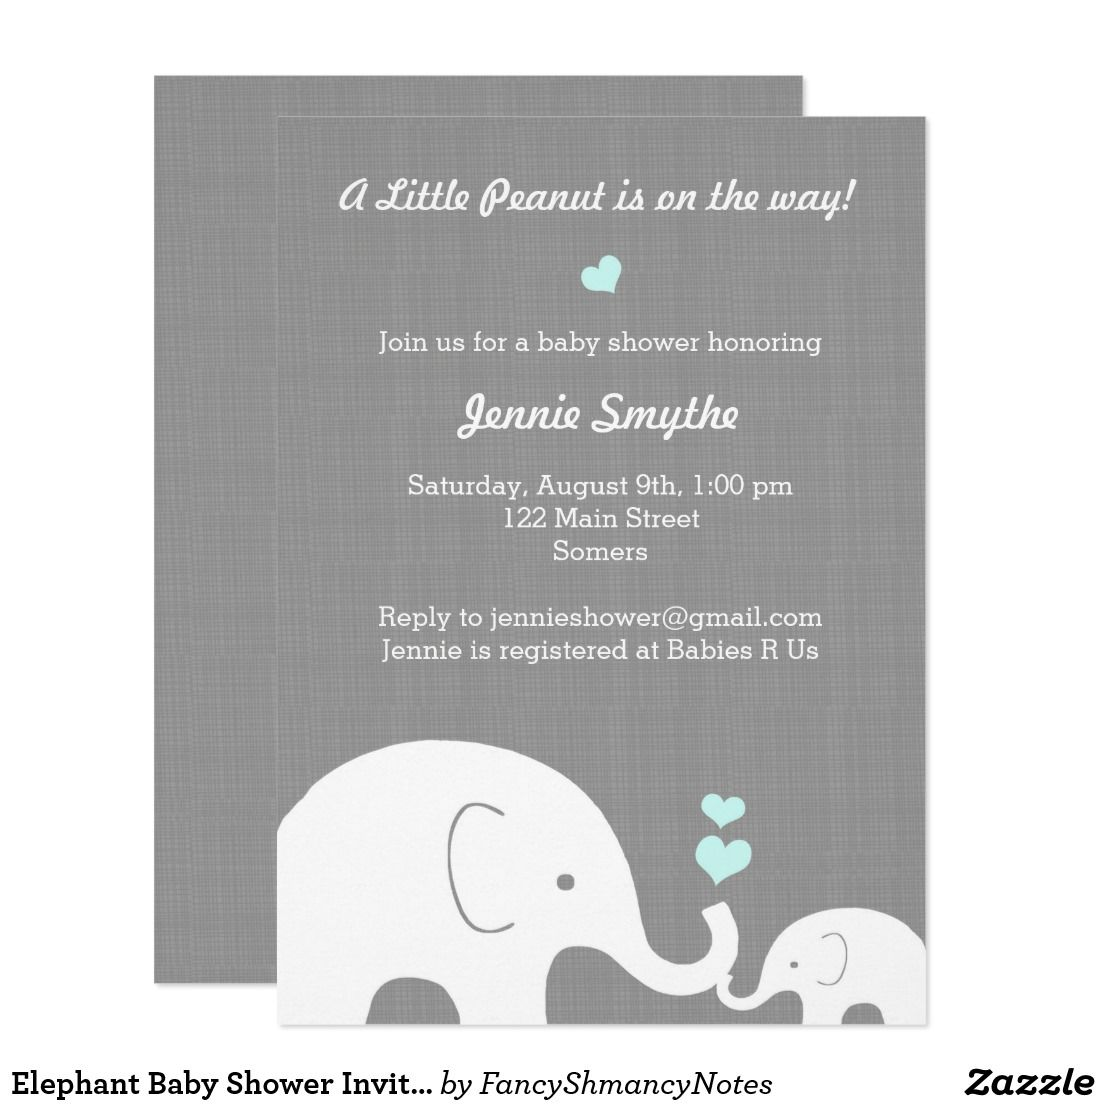 Elephant baby shower invitation blue hearts card little peanut elephant baby shower invitation blue hearts card little peanut invitations in grey and white feature stopboris Image collections